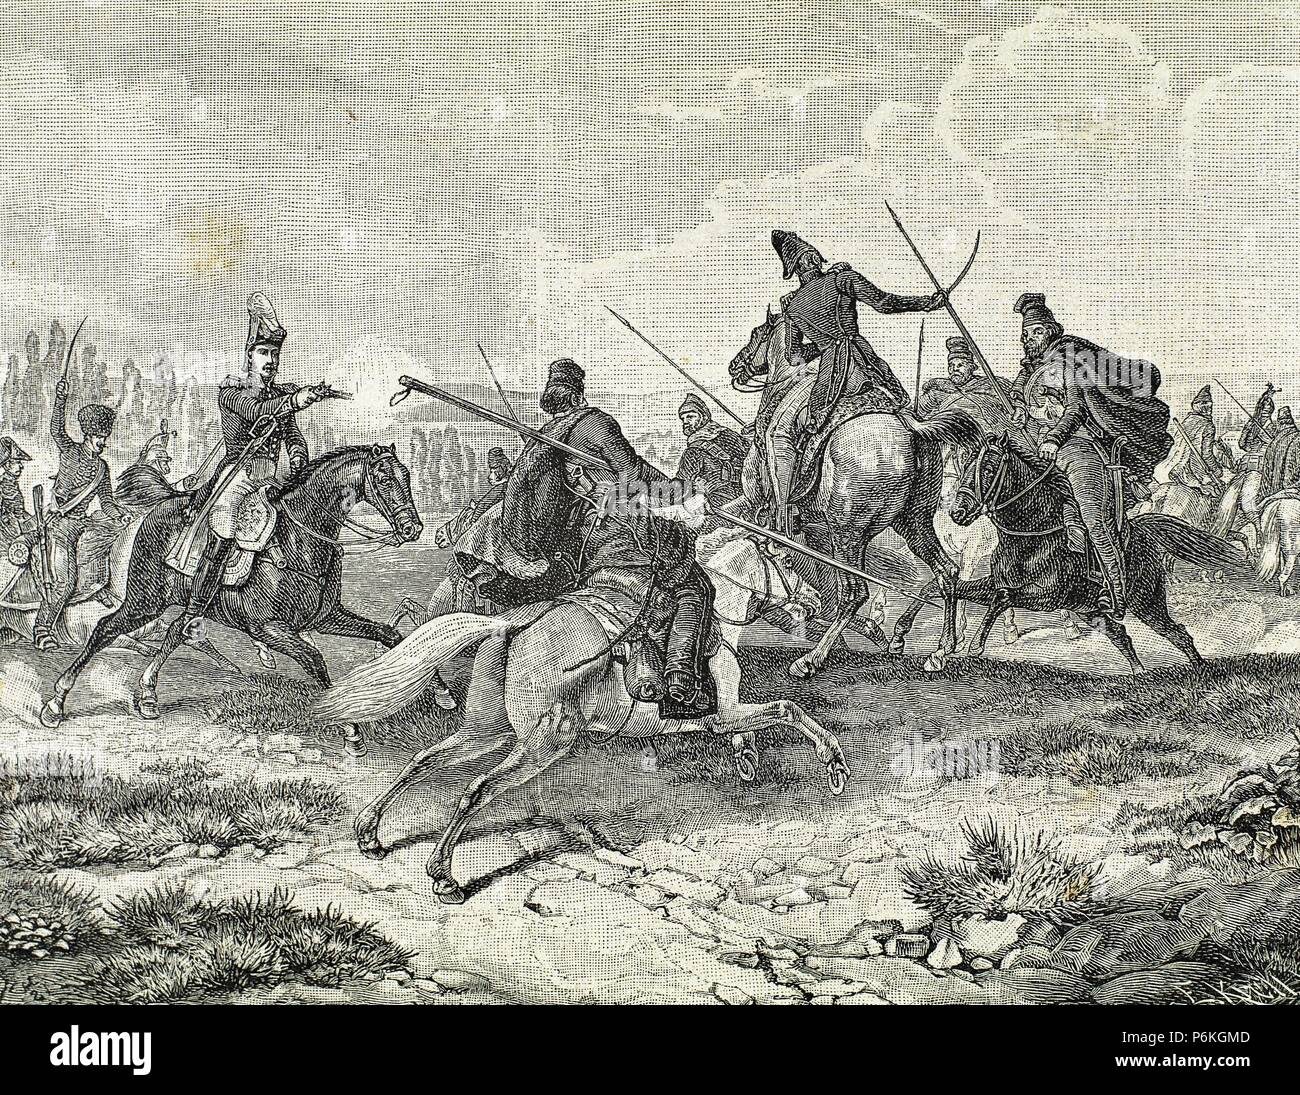 Napoleonic Wars. Struggle in Russia. Cossacks against French Army. Engraving, 19th century. Stock Photo